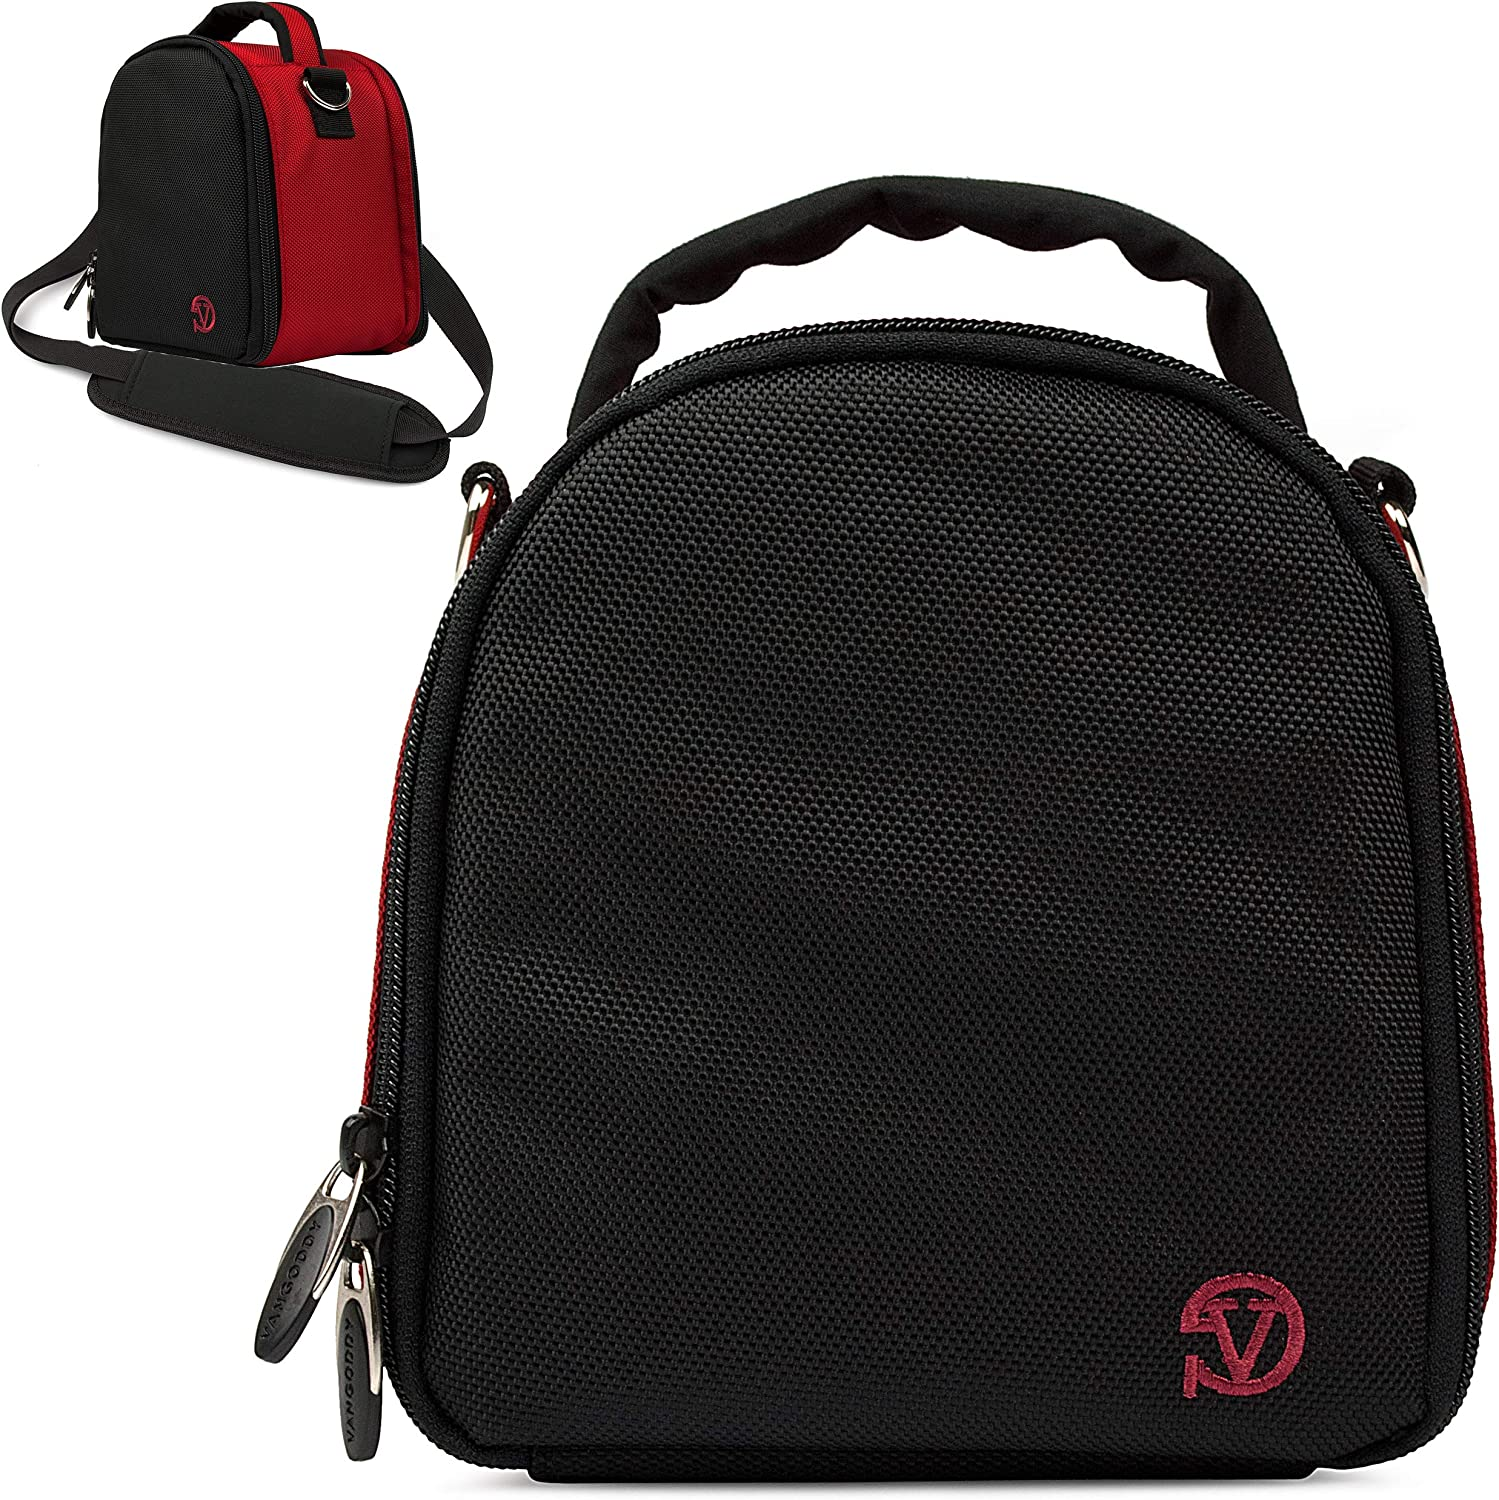 VanGoddy Laurel Fire Red Carrying Case Bag for Canon VIXA Series Camcorders